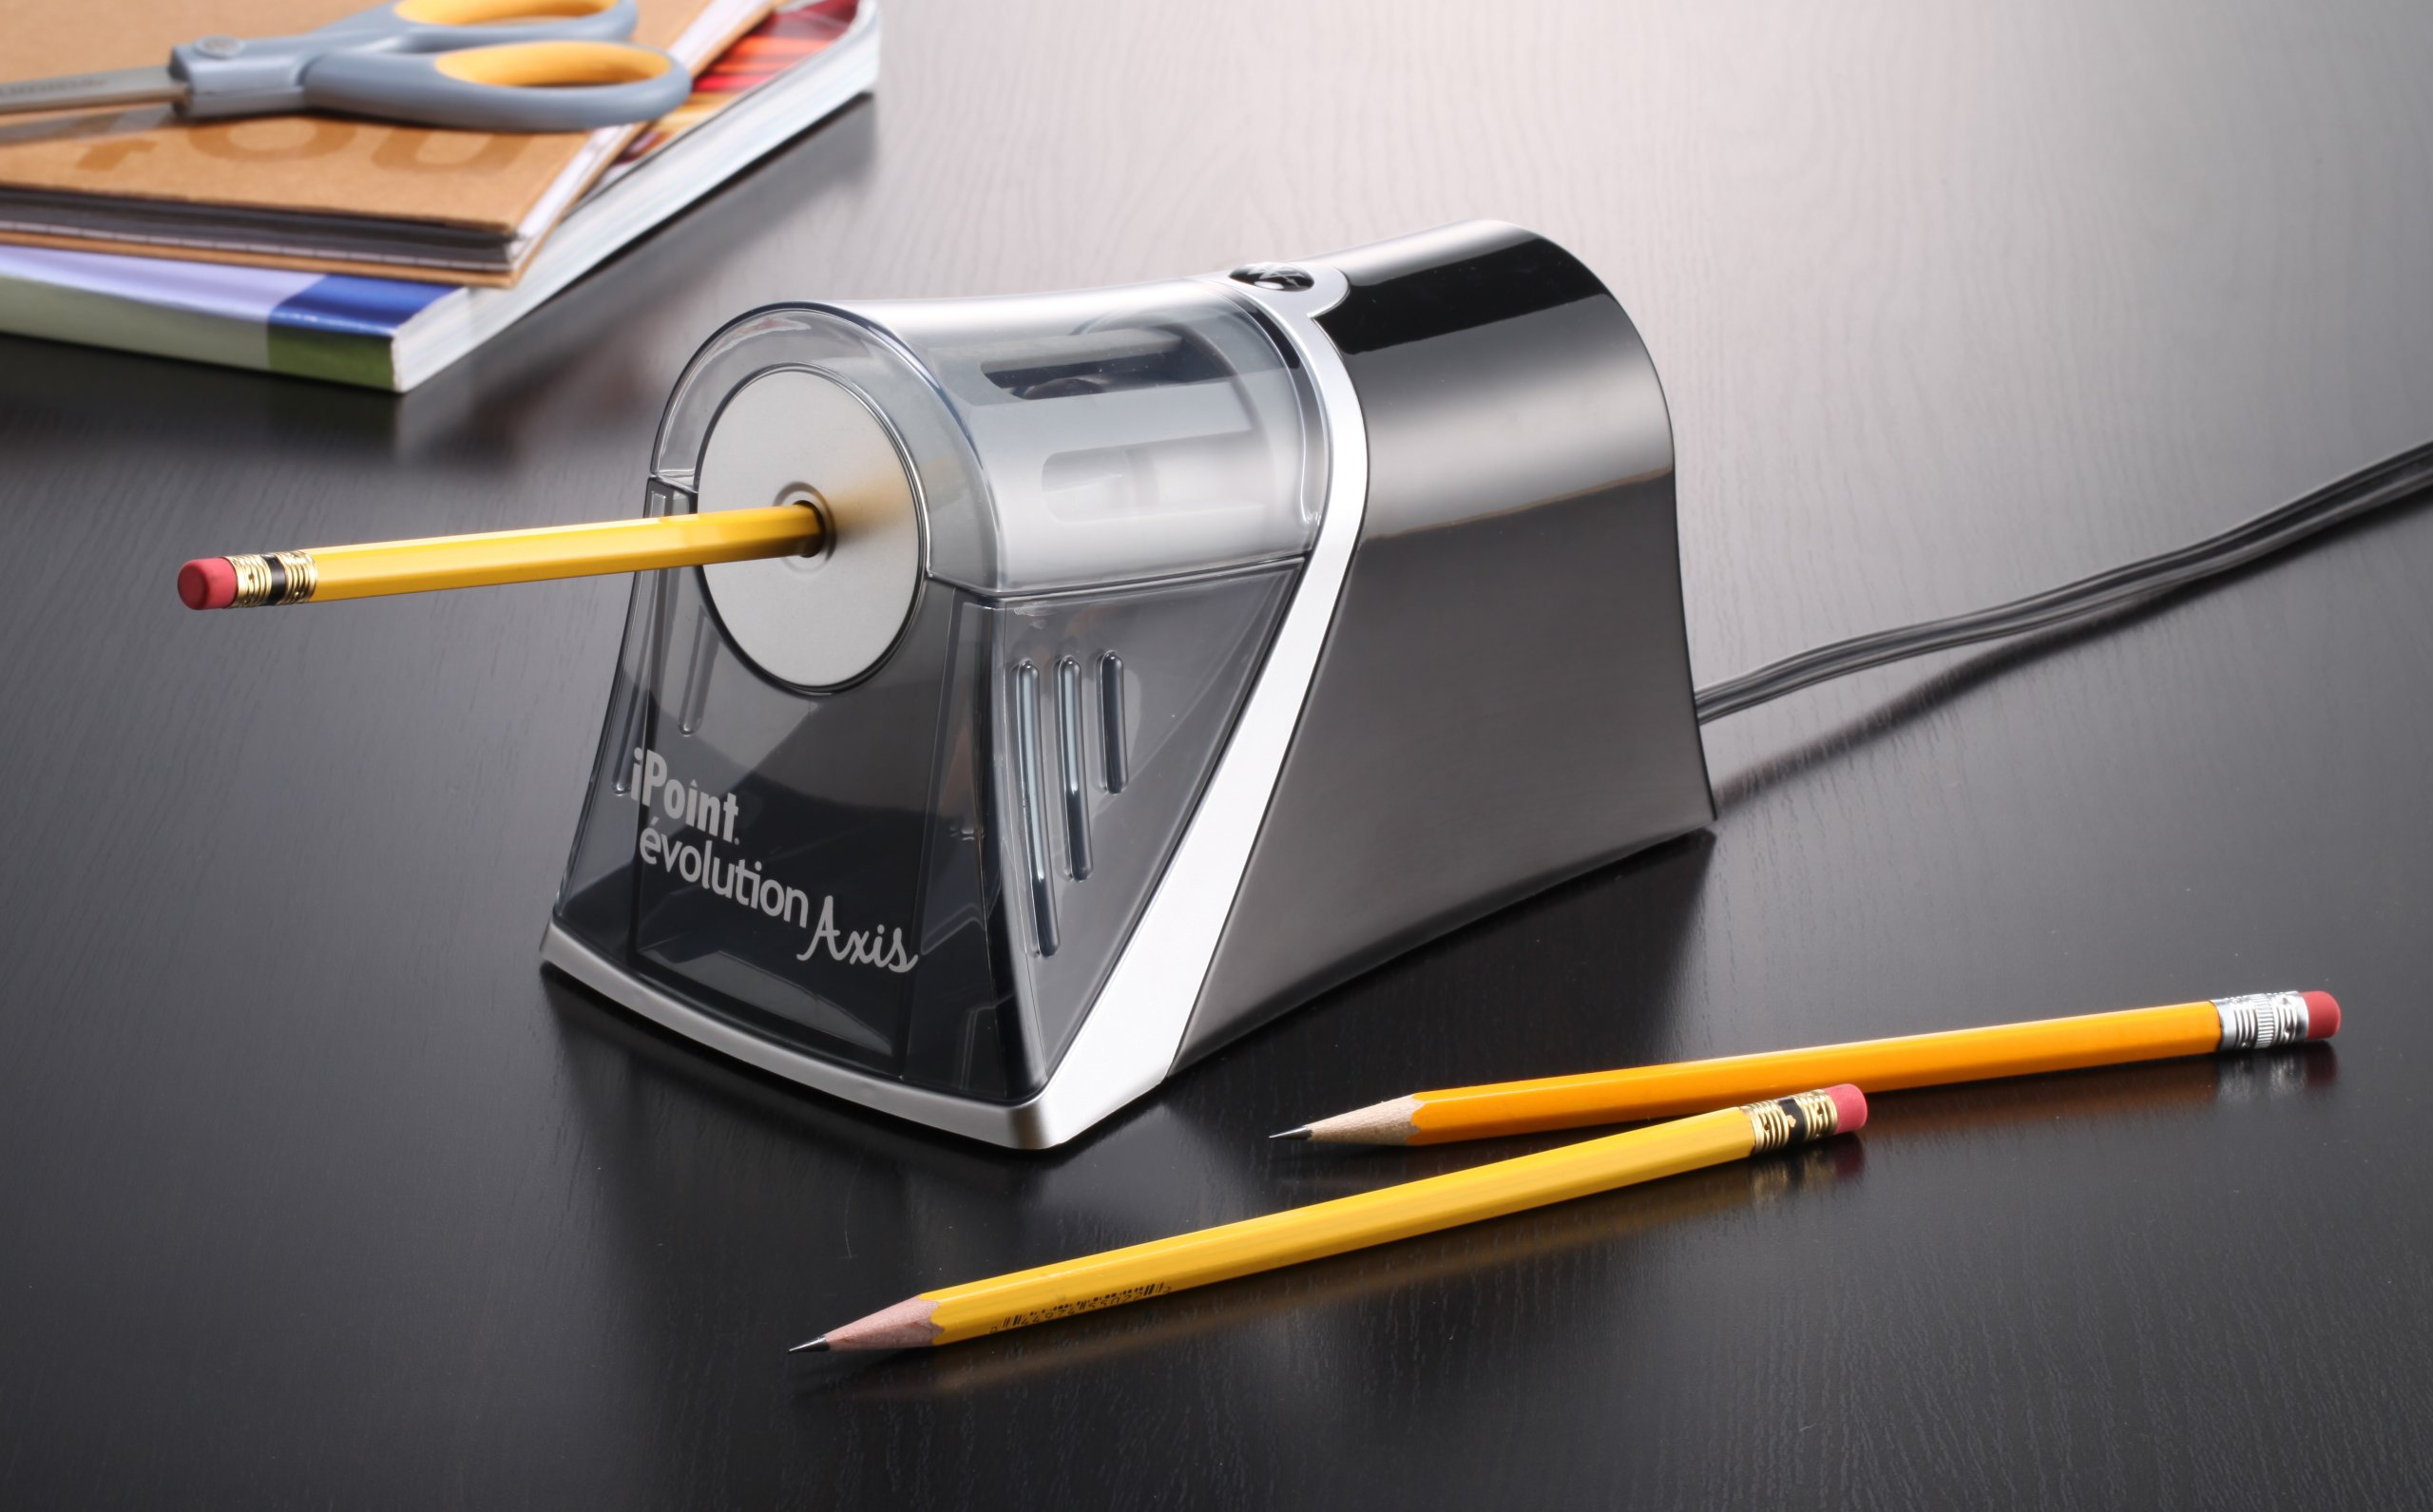 Westcott iPoint Evolution Axis Electric Sharpener by Westcott (Image #2)